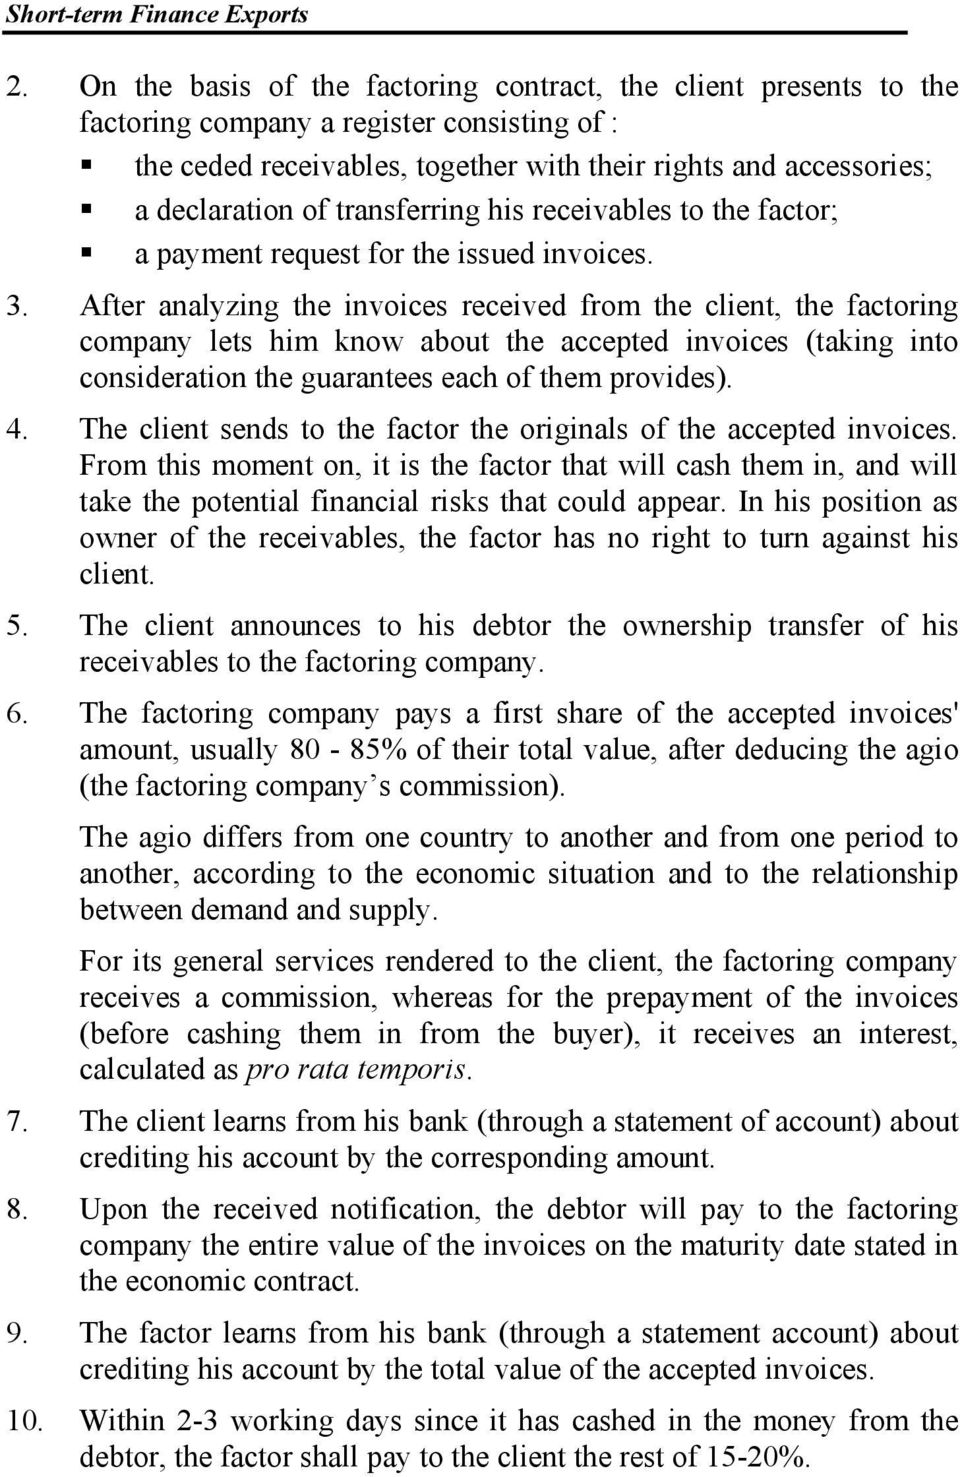 After analyzing the invoices received from the client, the factoring company lets him know about the accepted invoices (taking into consideration the guarantees each of them provides). 4.